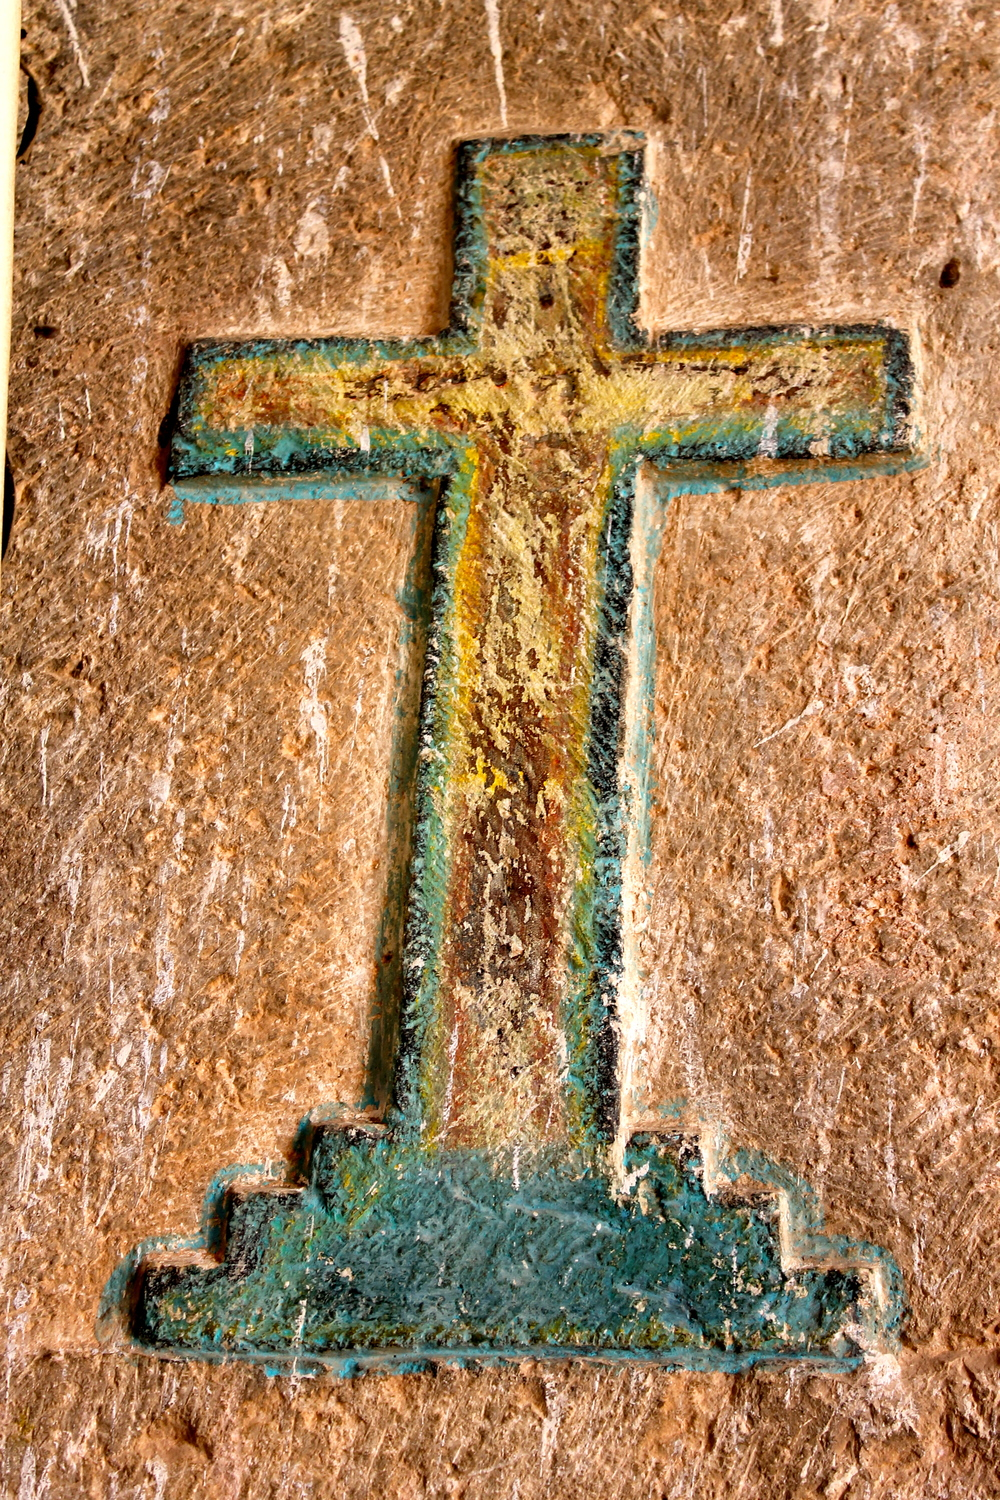 Wooden cross in stucco on a church wall in Mama (that's the name of the town, really)